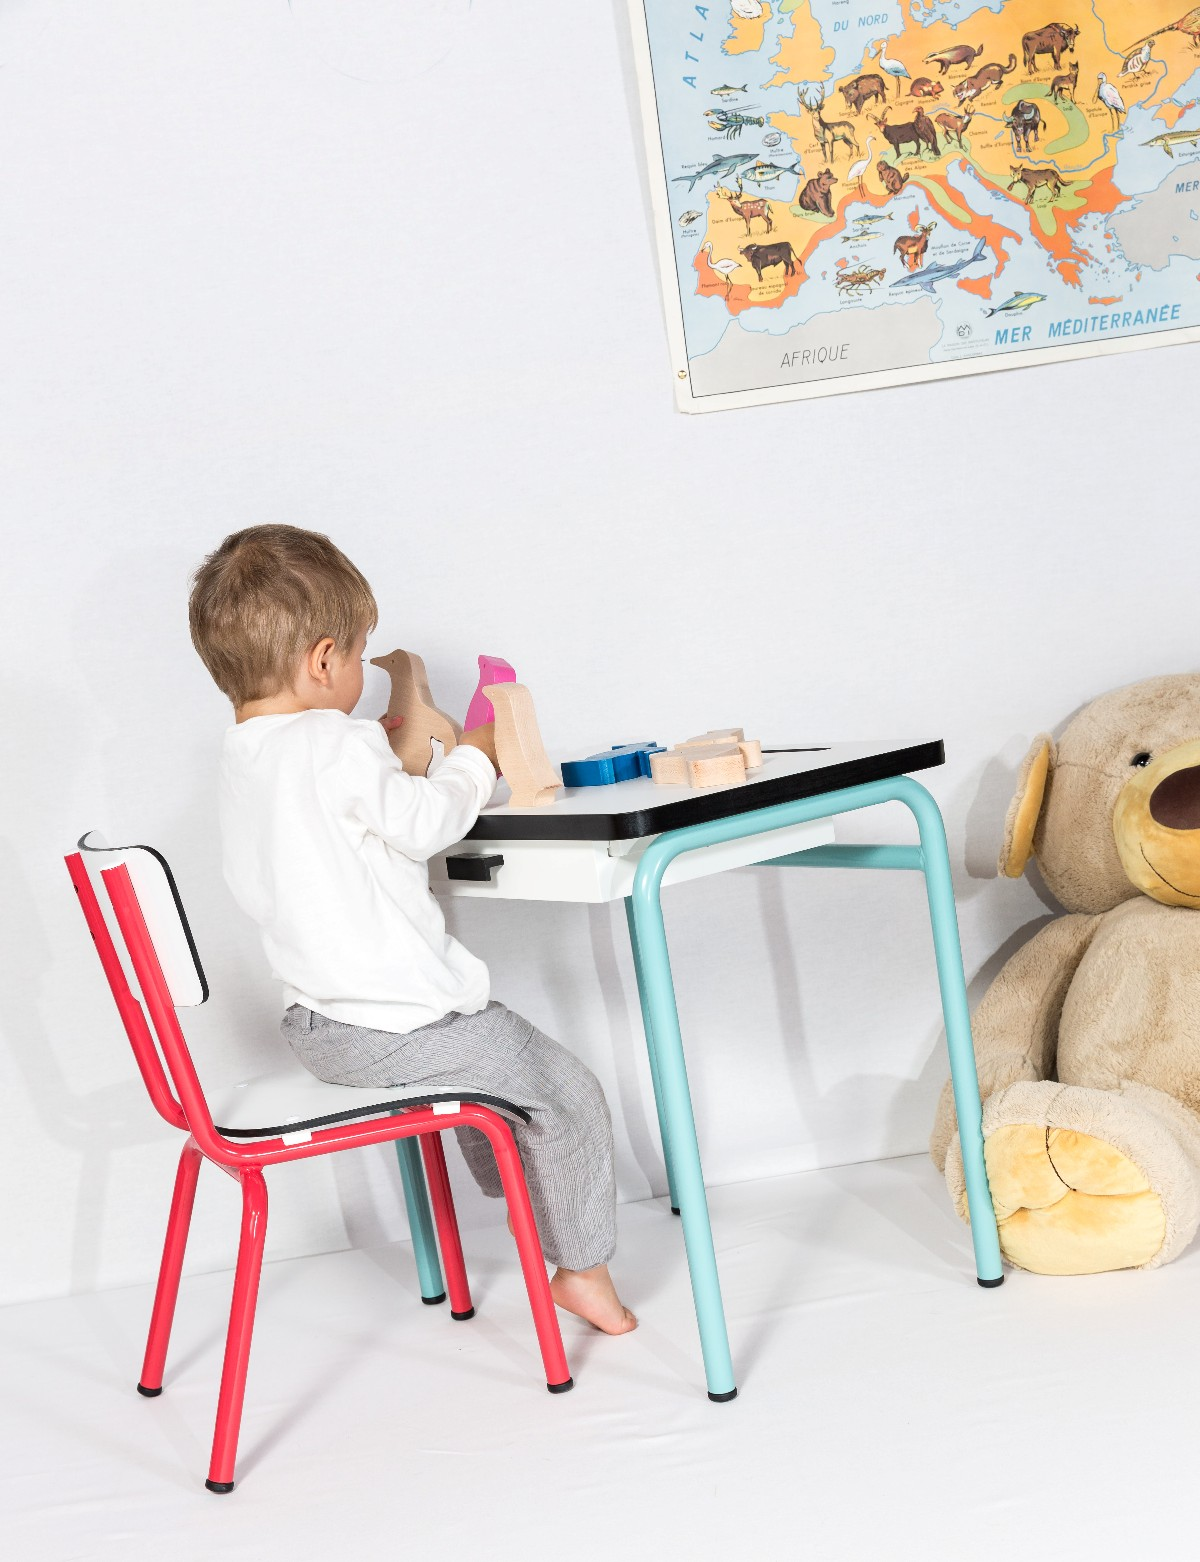 bonnes notes et coin bureau dans la chambre d enfant r ve de pan le blog. Black Bedroom Furniture Sets. Home Design Ideas